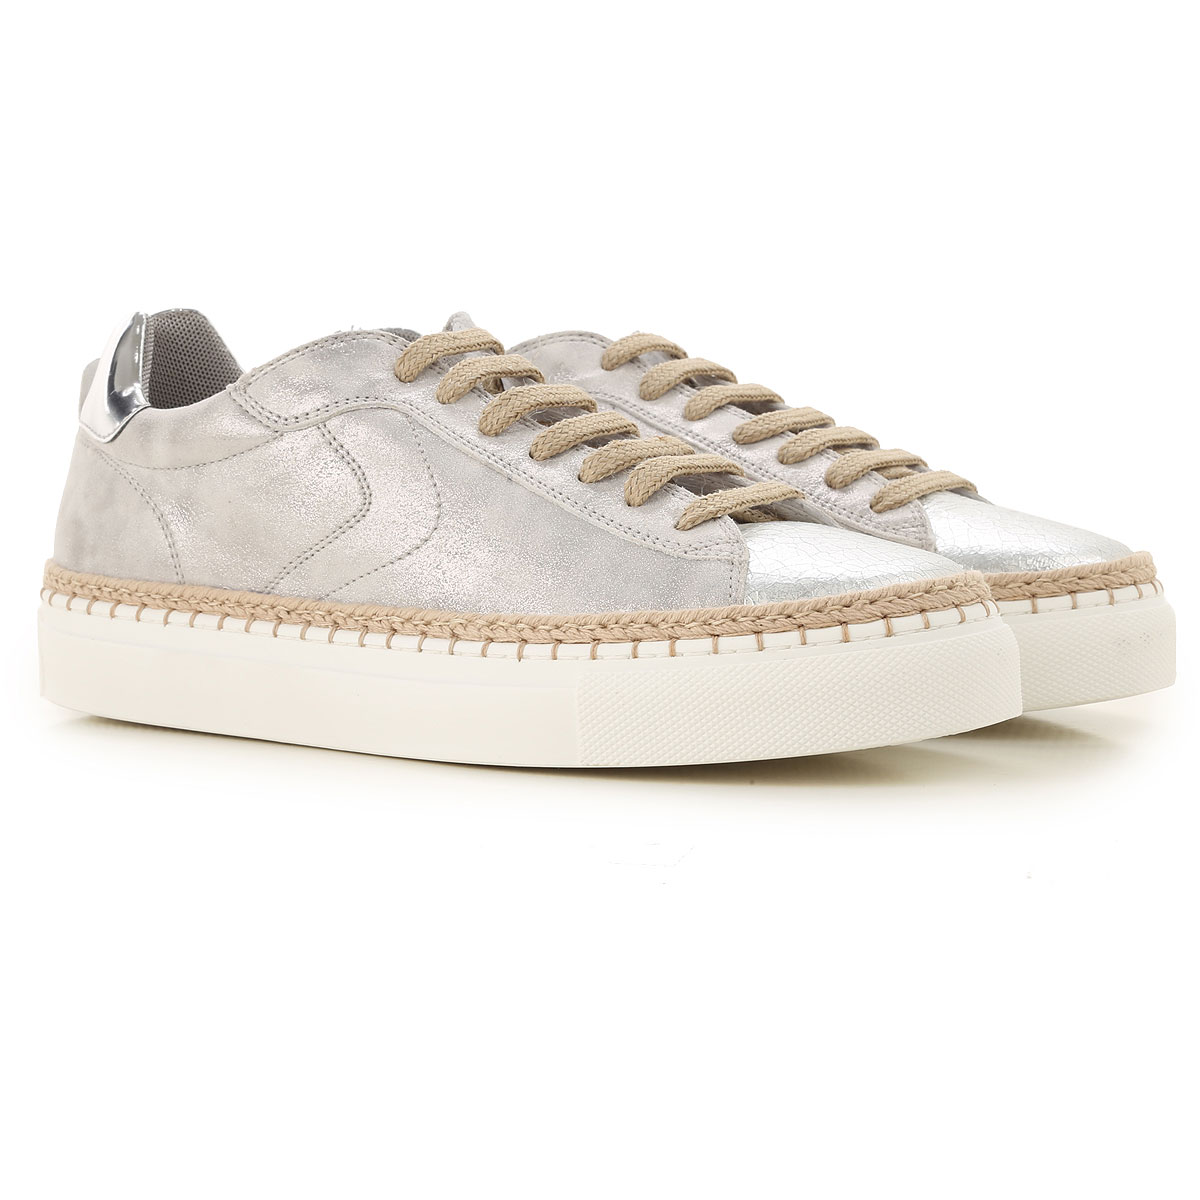 Voile Blanche Sneakers for Women On Sale, Silver, Leather, 2019, 6 7 8 9